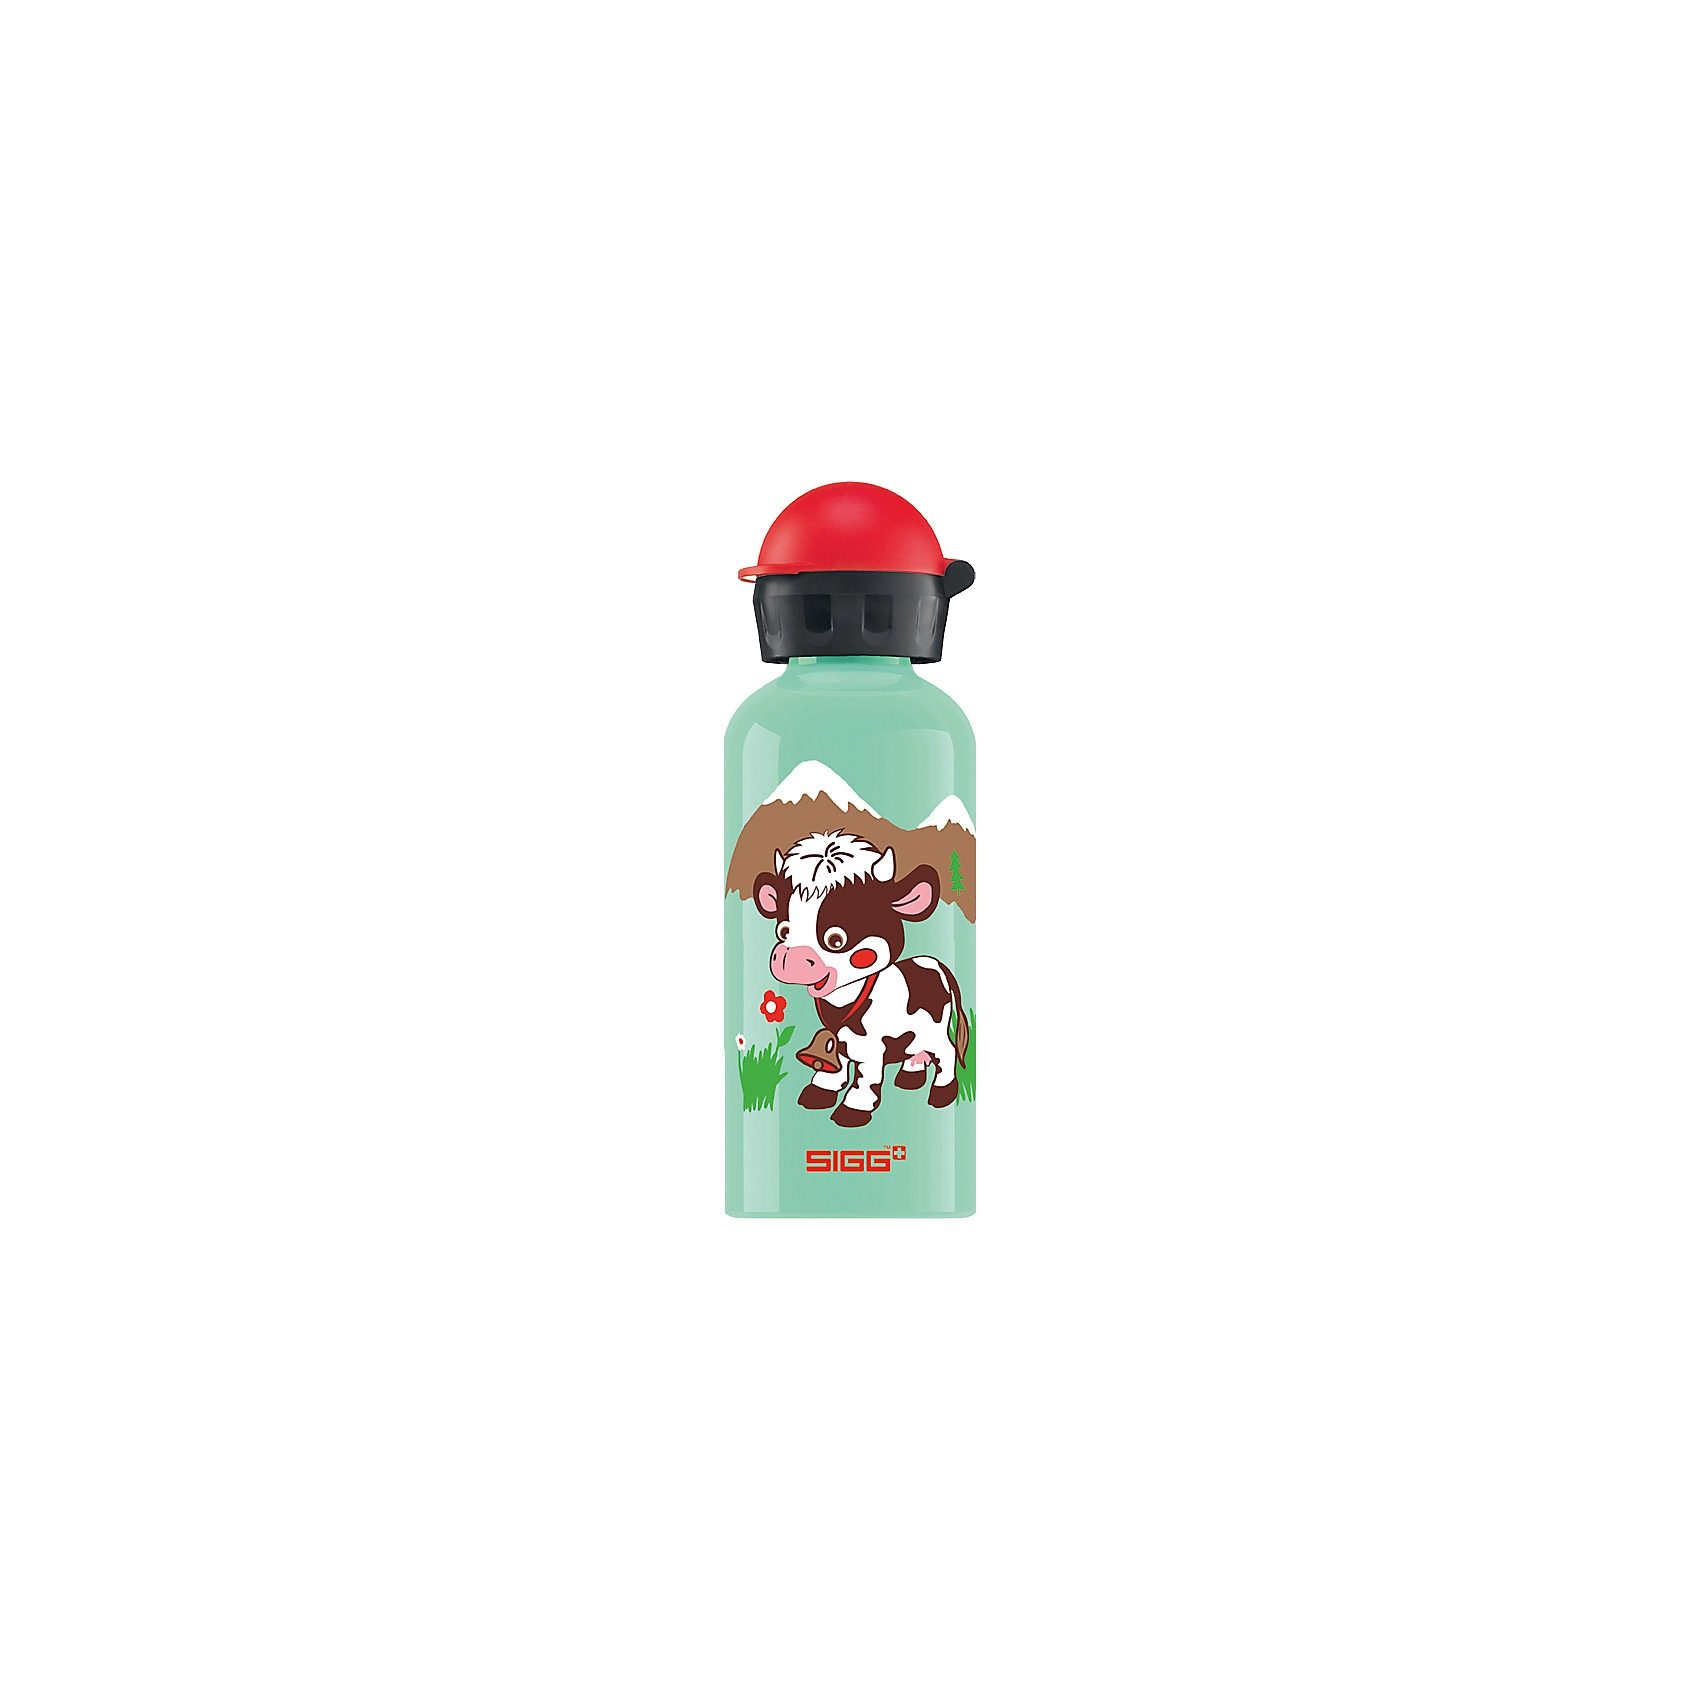 SIGG Alu-Trinkflasche Swiss Friends, 400 ml